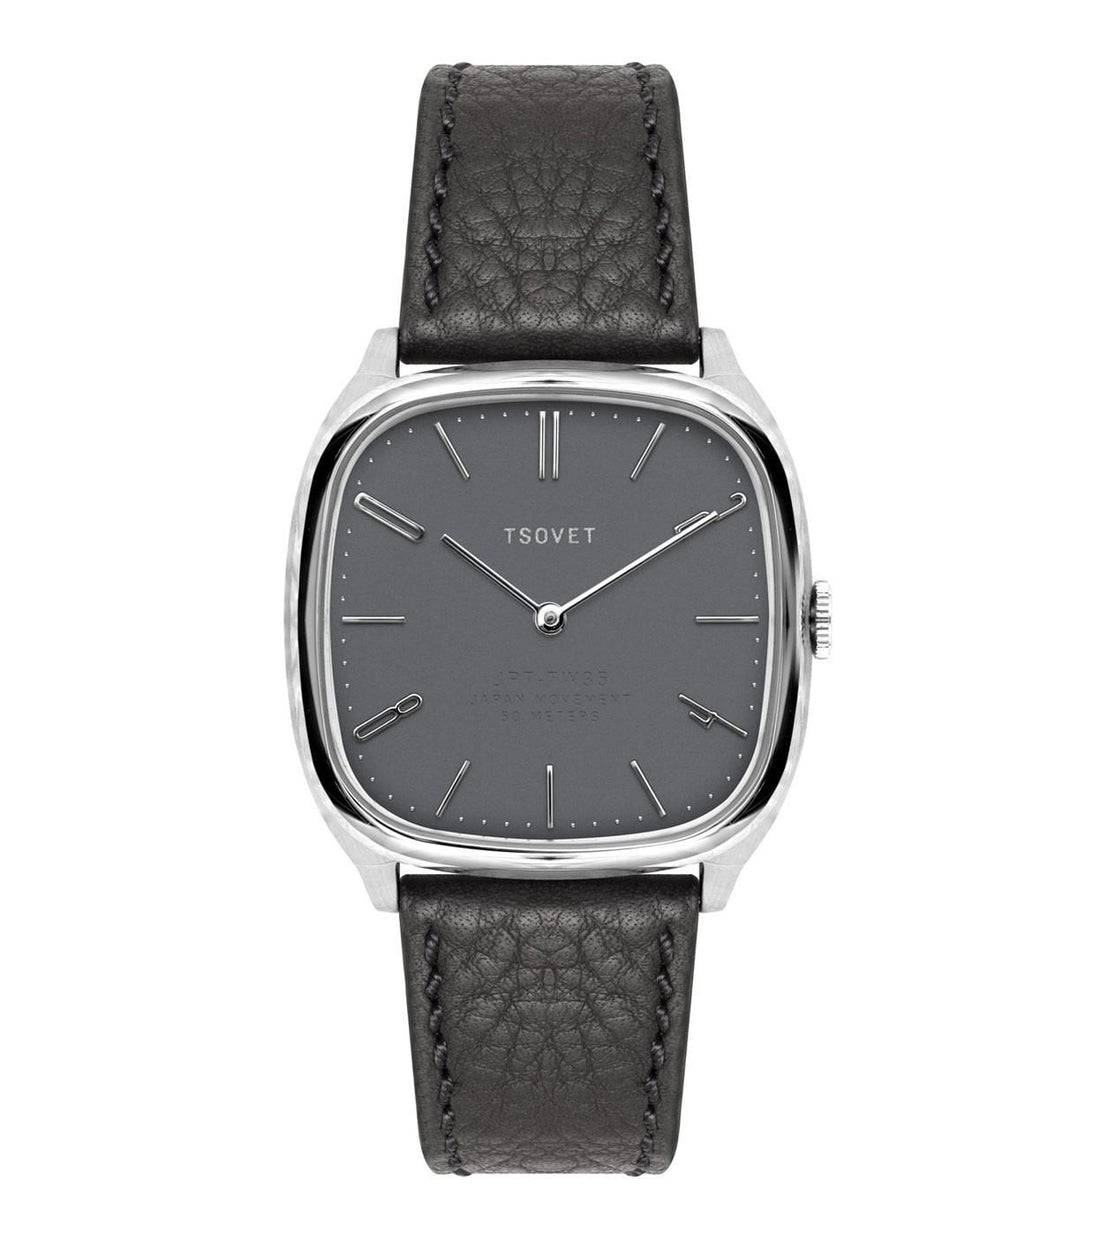 Tsovet Stainless/Black/Black - Accessories: Watches - Iron and Resin